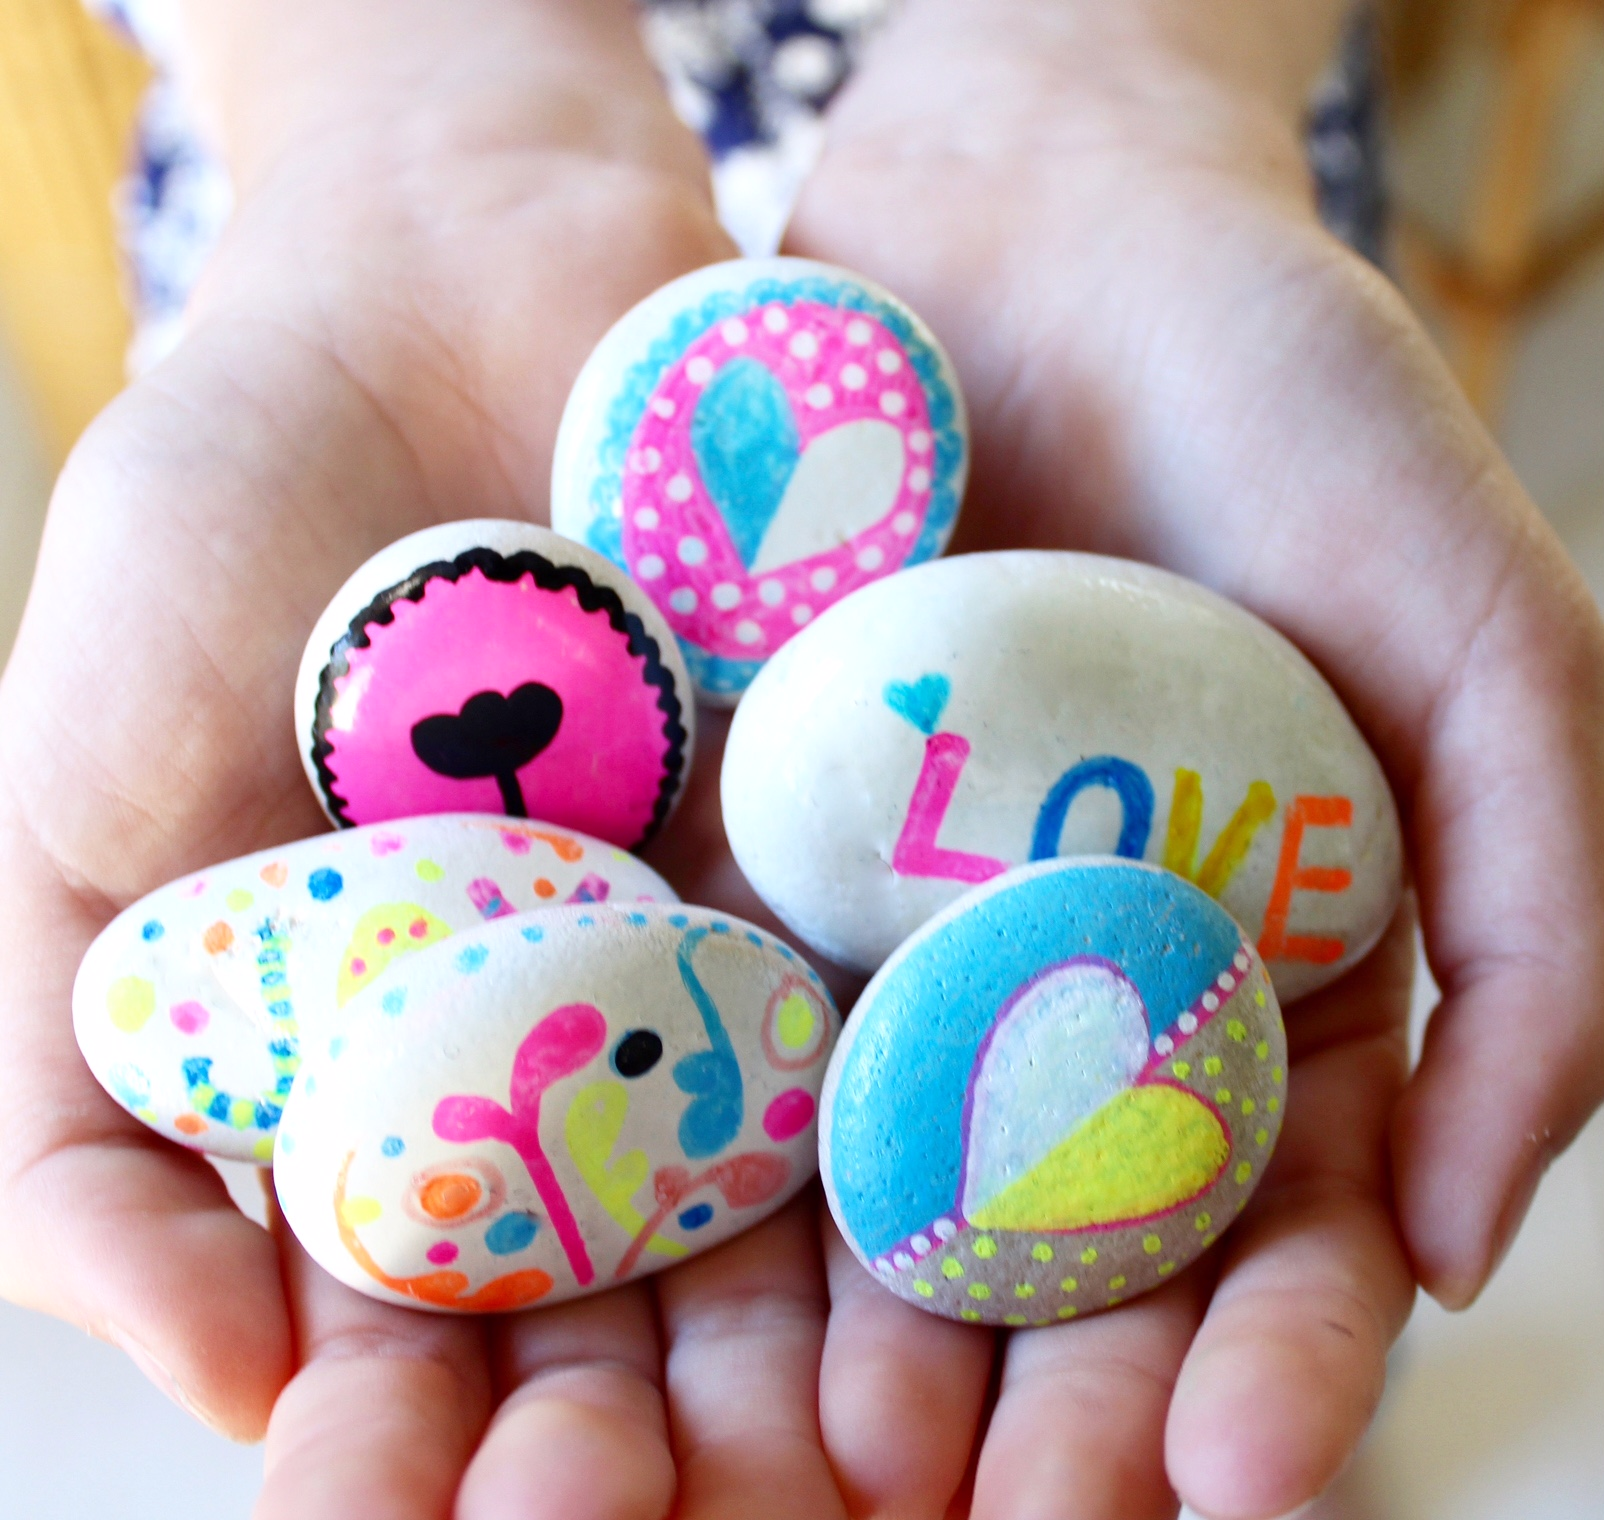 painted rocks | kindness rocks for kids - more ideas on the blog. www.fourcheekymonkeys.com